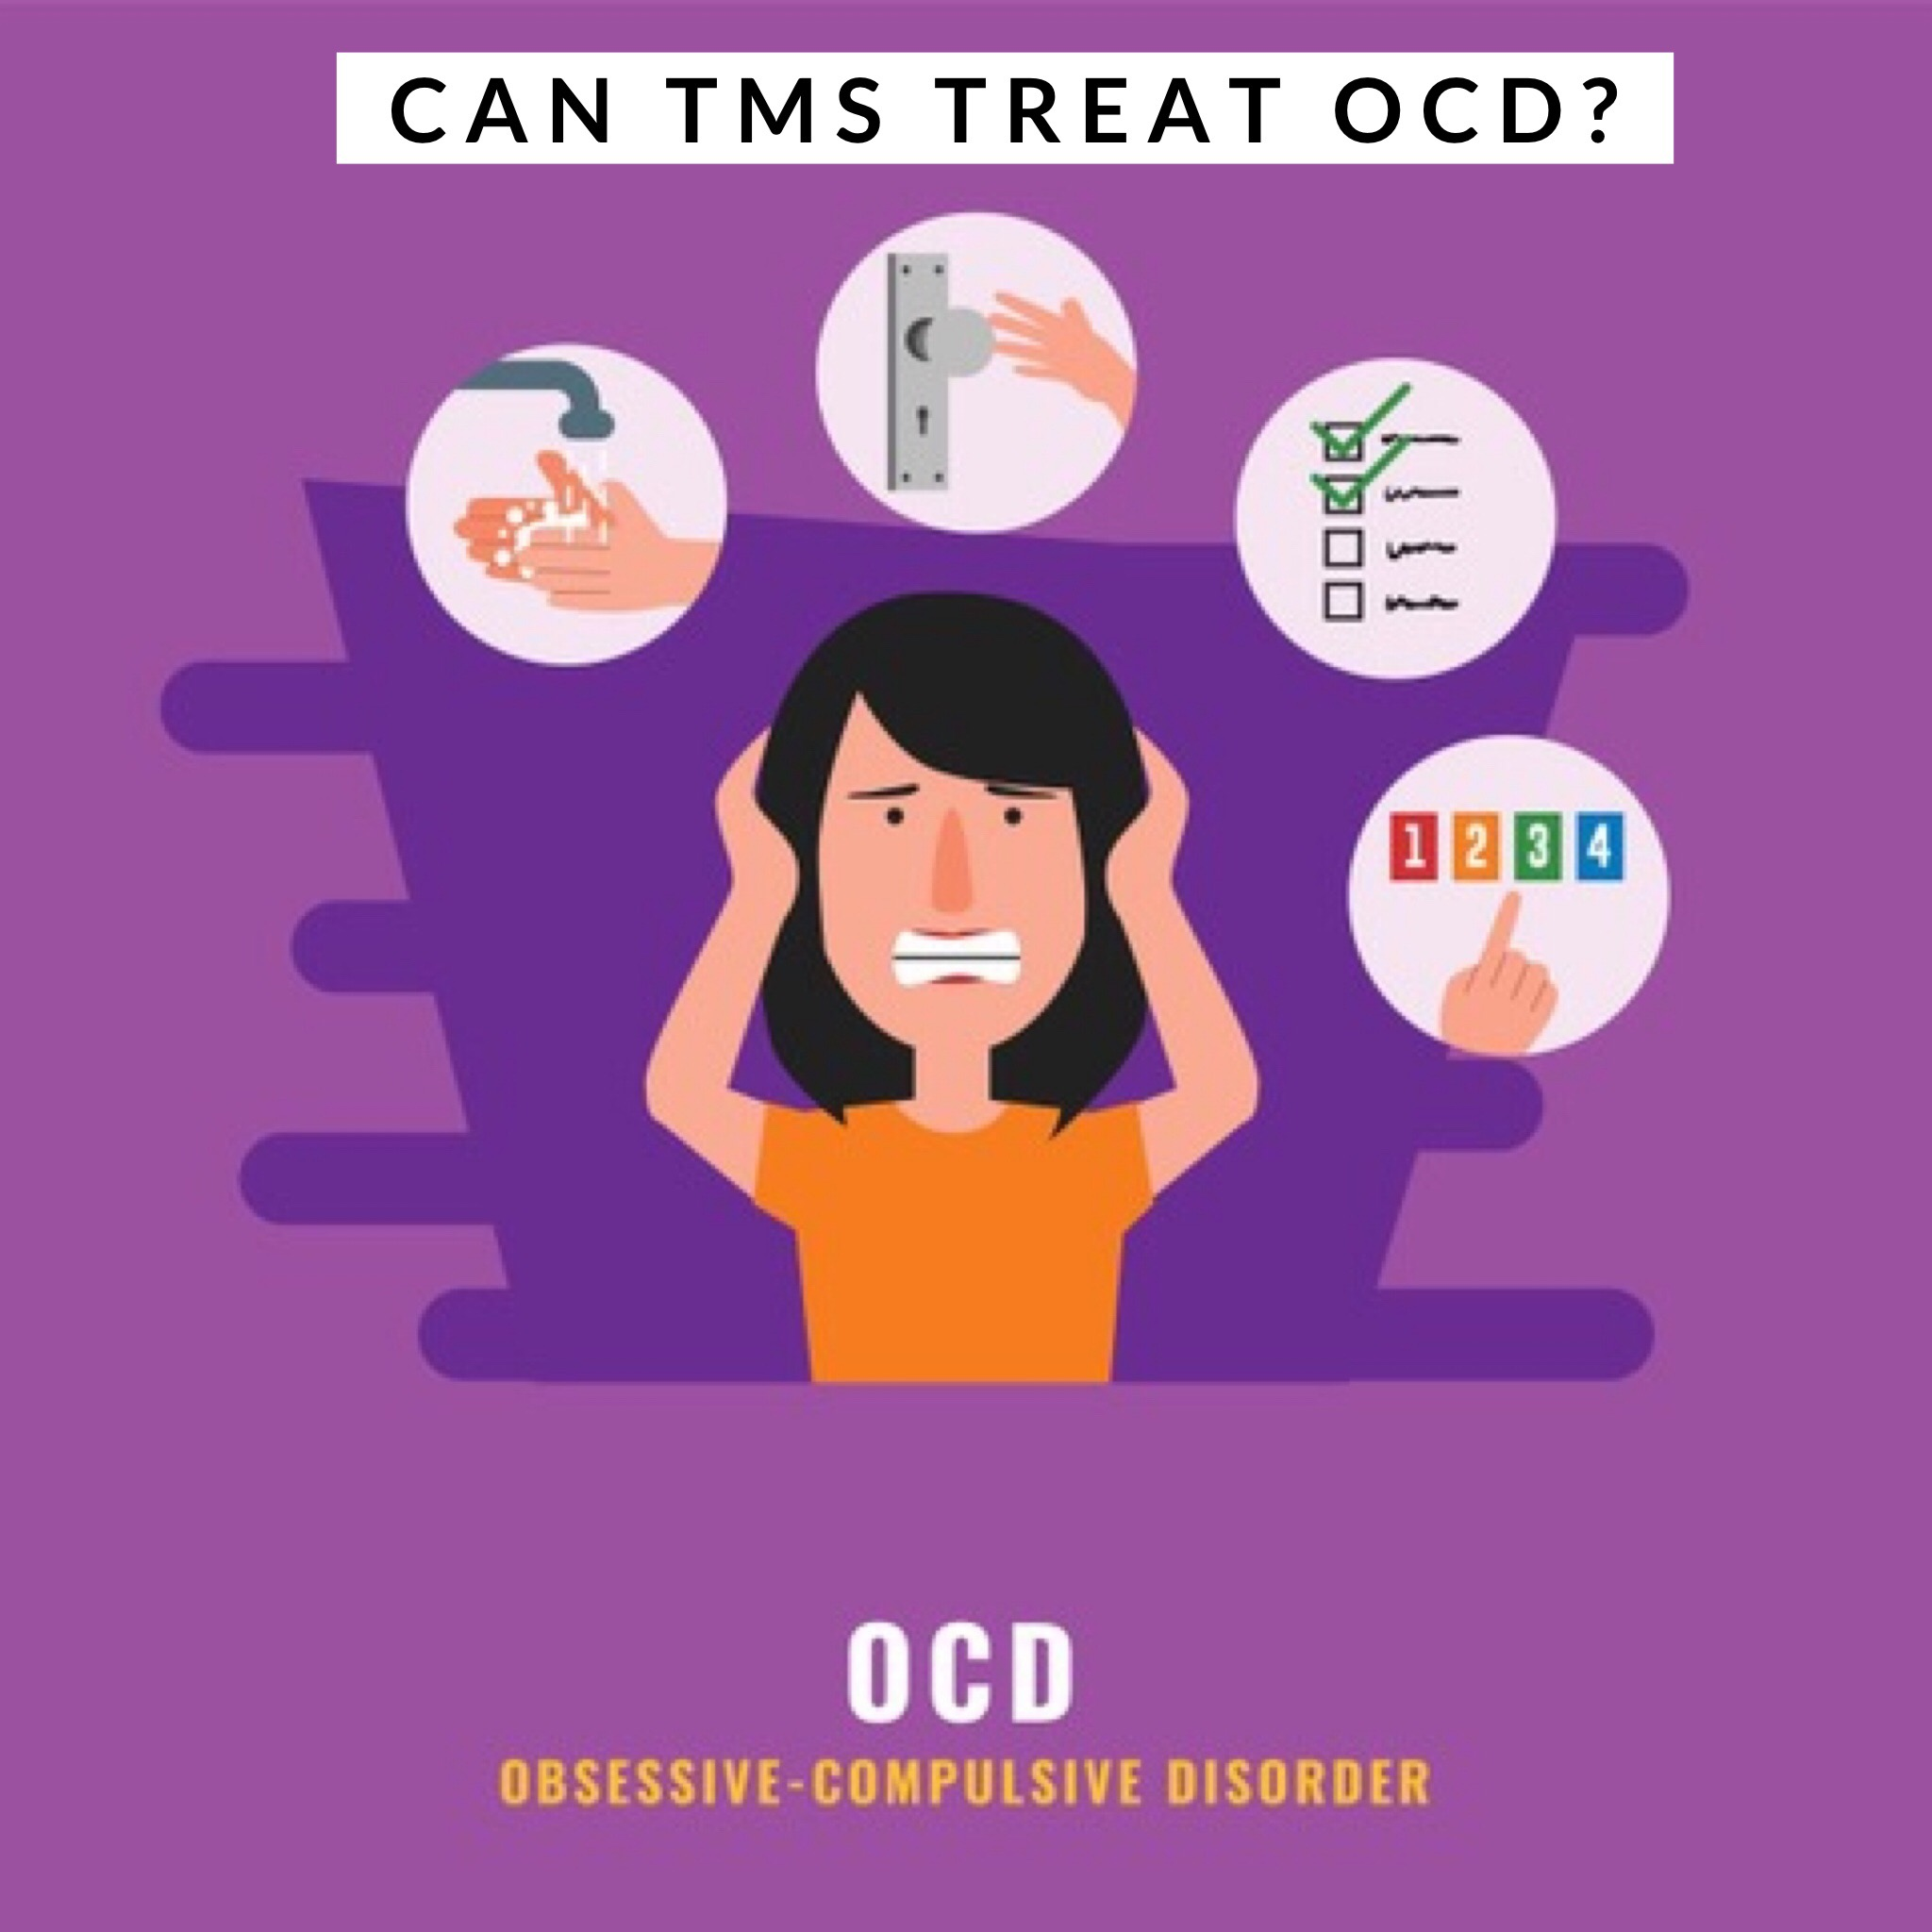 Can Transcranial Magnetic Stimulation treat OCD?